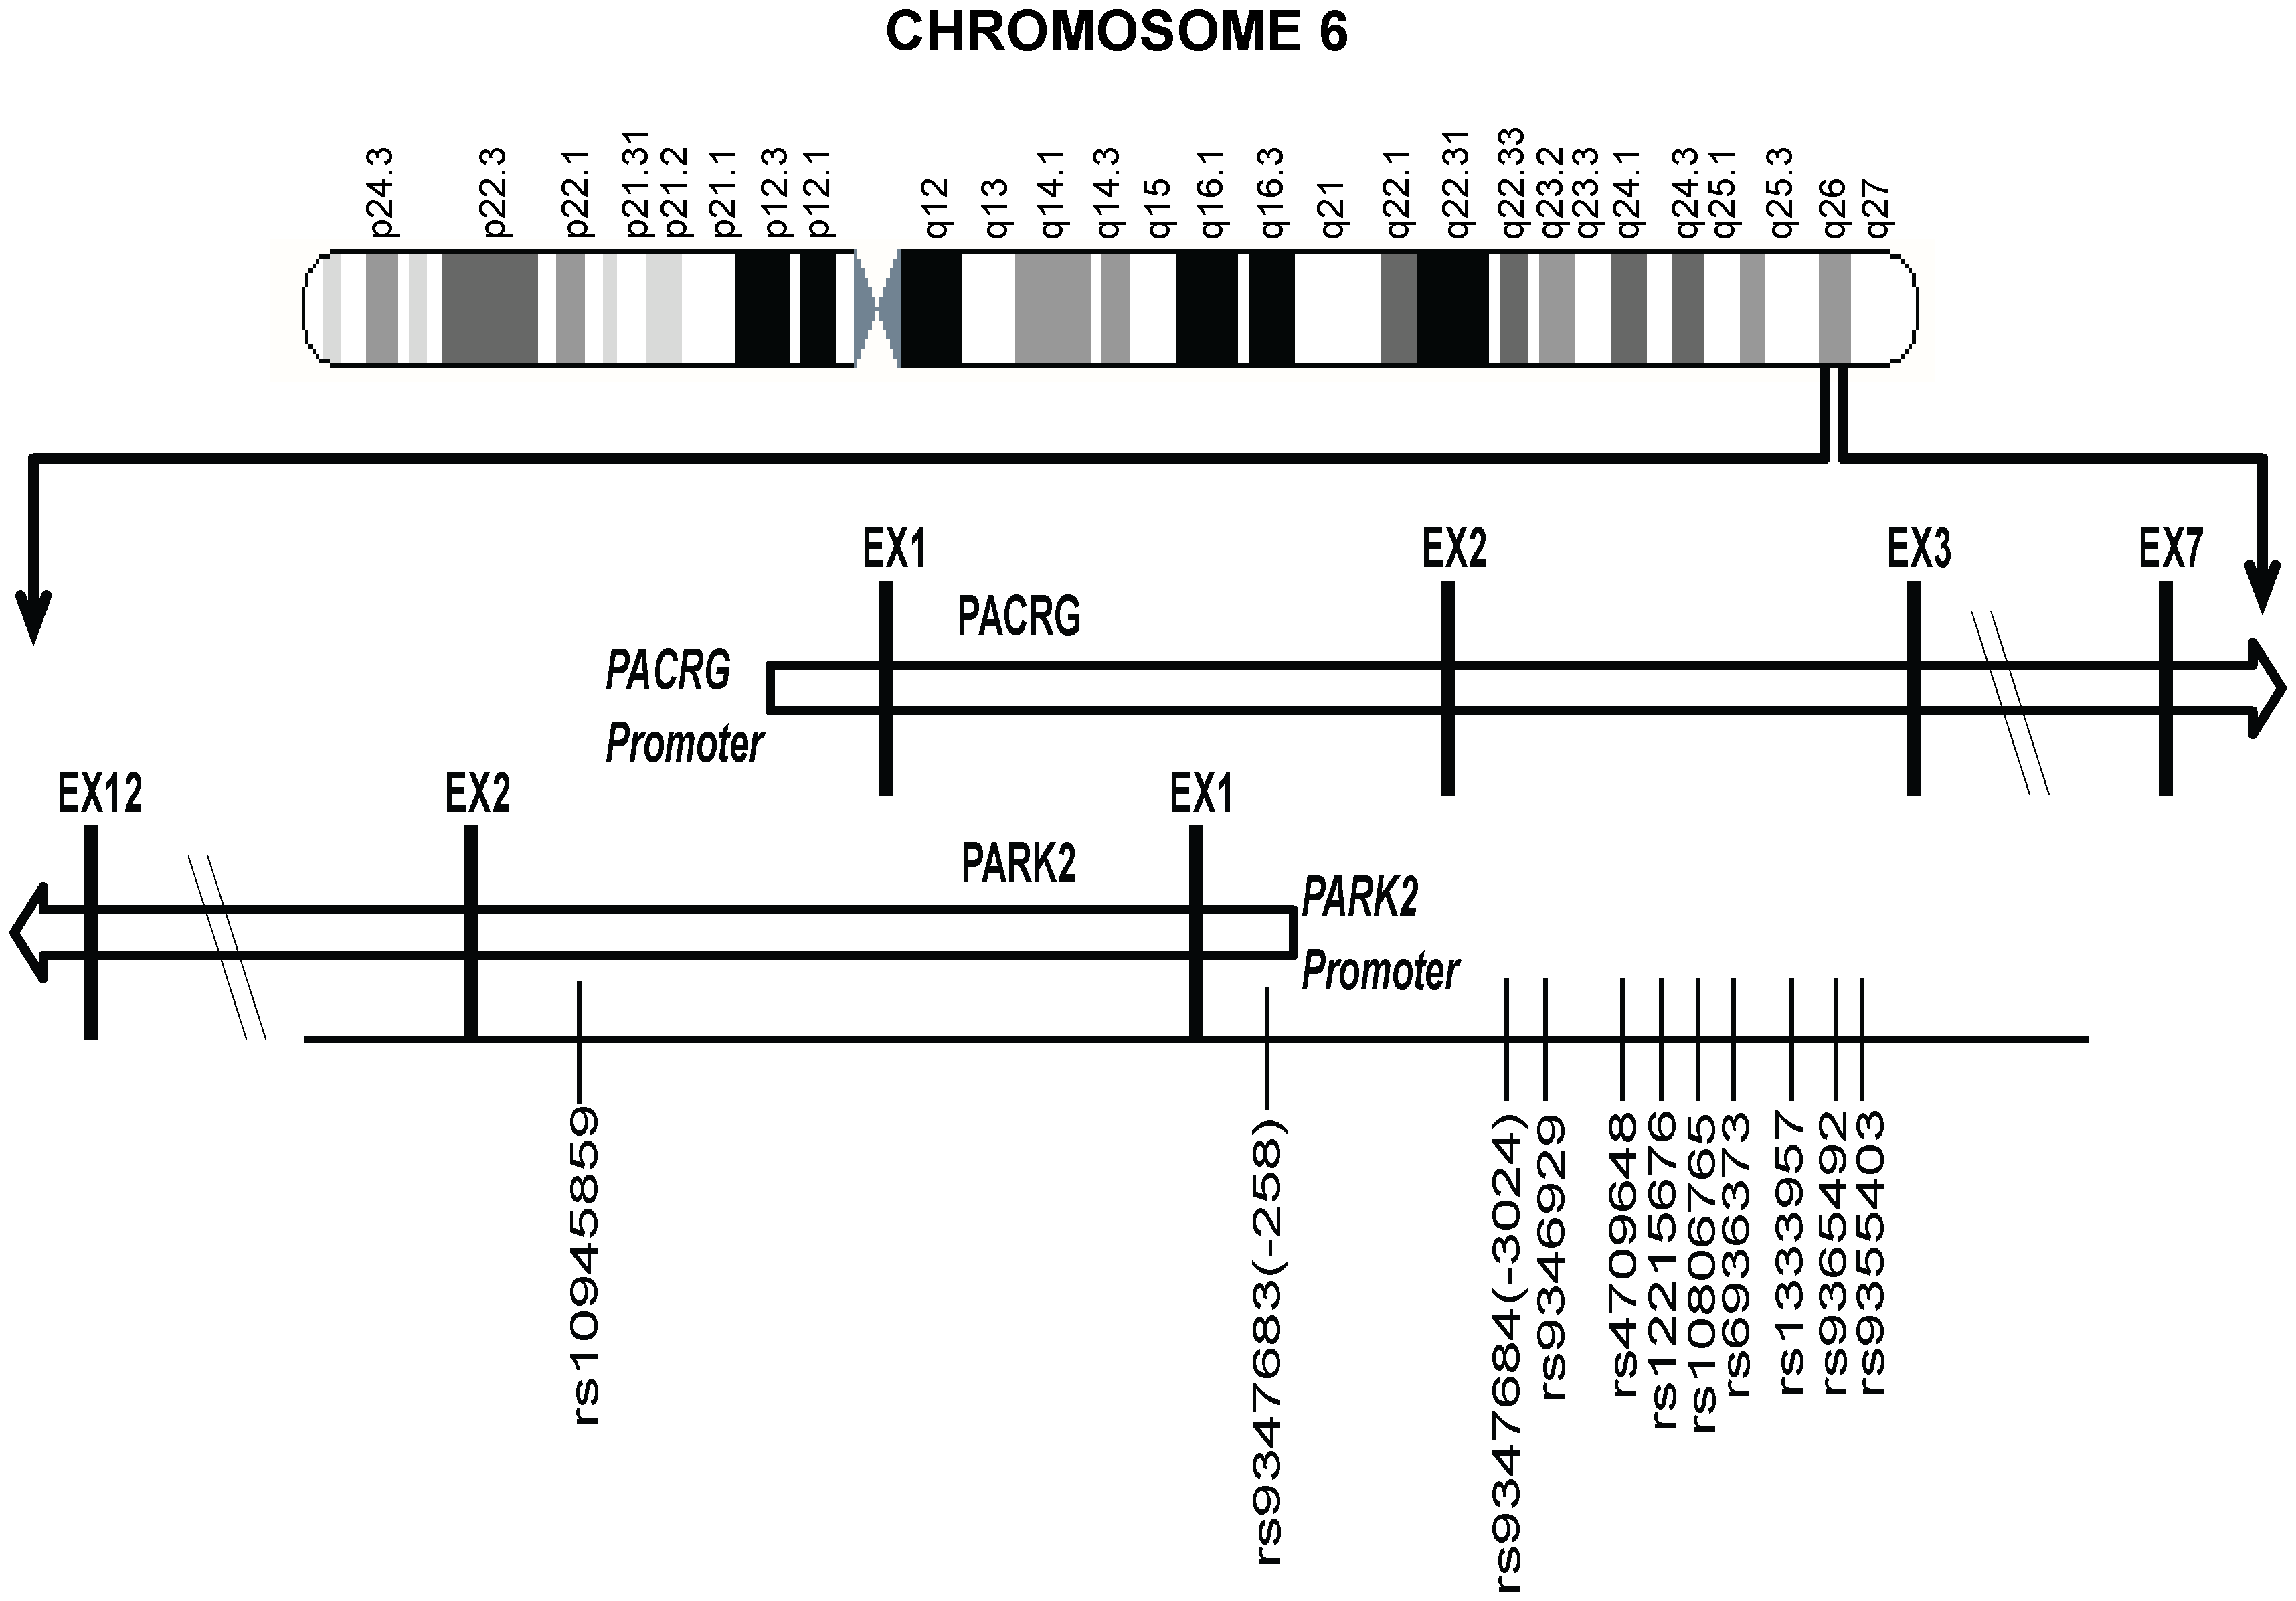 A partial map of Chromosome-6q26 expanded to show the position and distribution of 11 significant SNPs (shown with rs numbers) in the regulatory region of the PARK2 and PACRG genes.